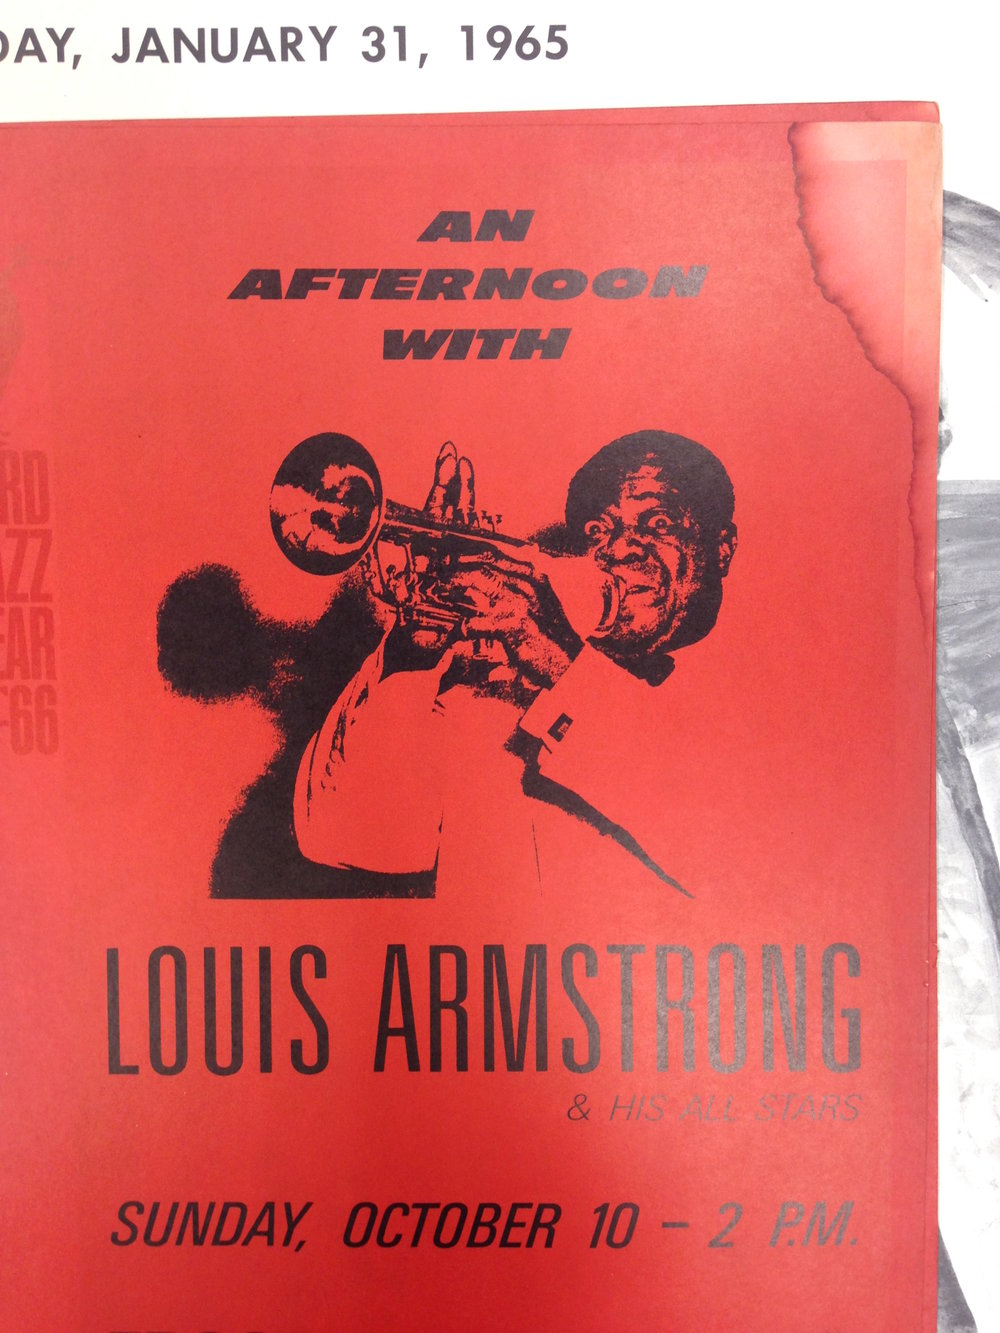 new orleans jazz archives louis armstrong an afternoon with louis armstrong and his all stars jazz poster 1966 stanford university spring finn and co adventures